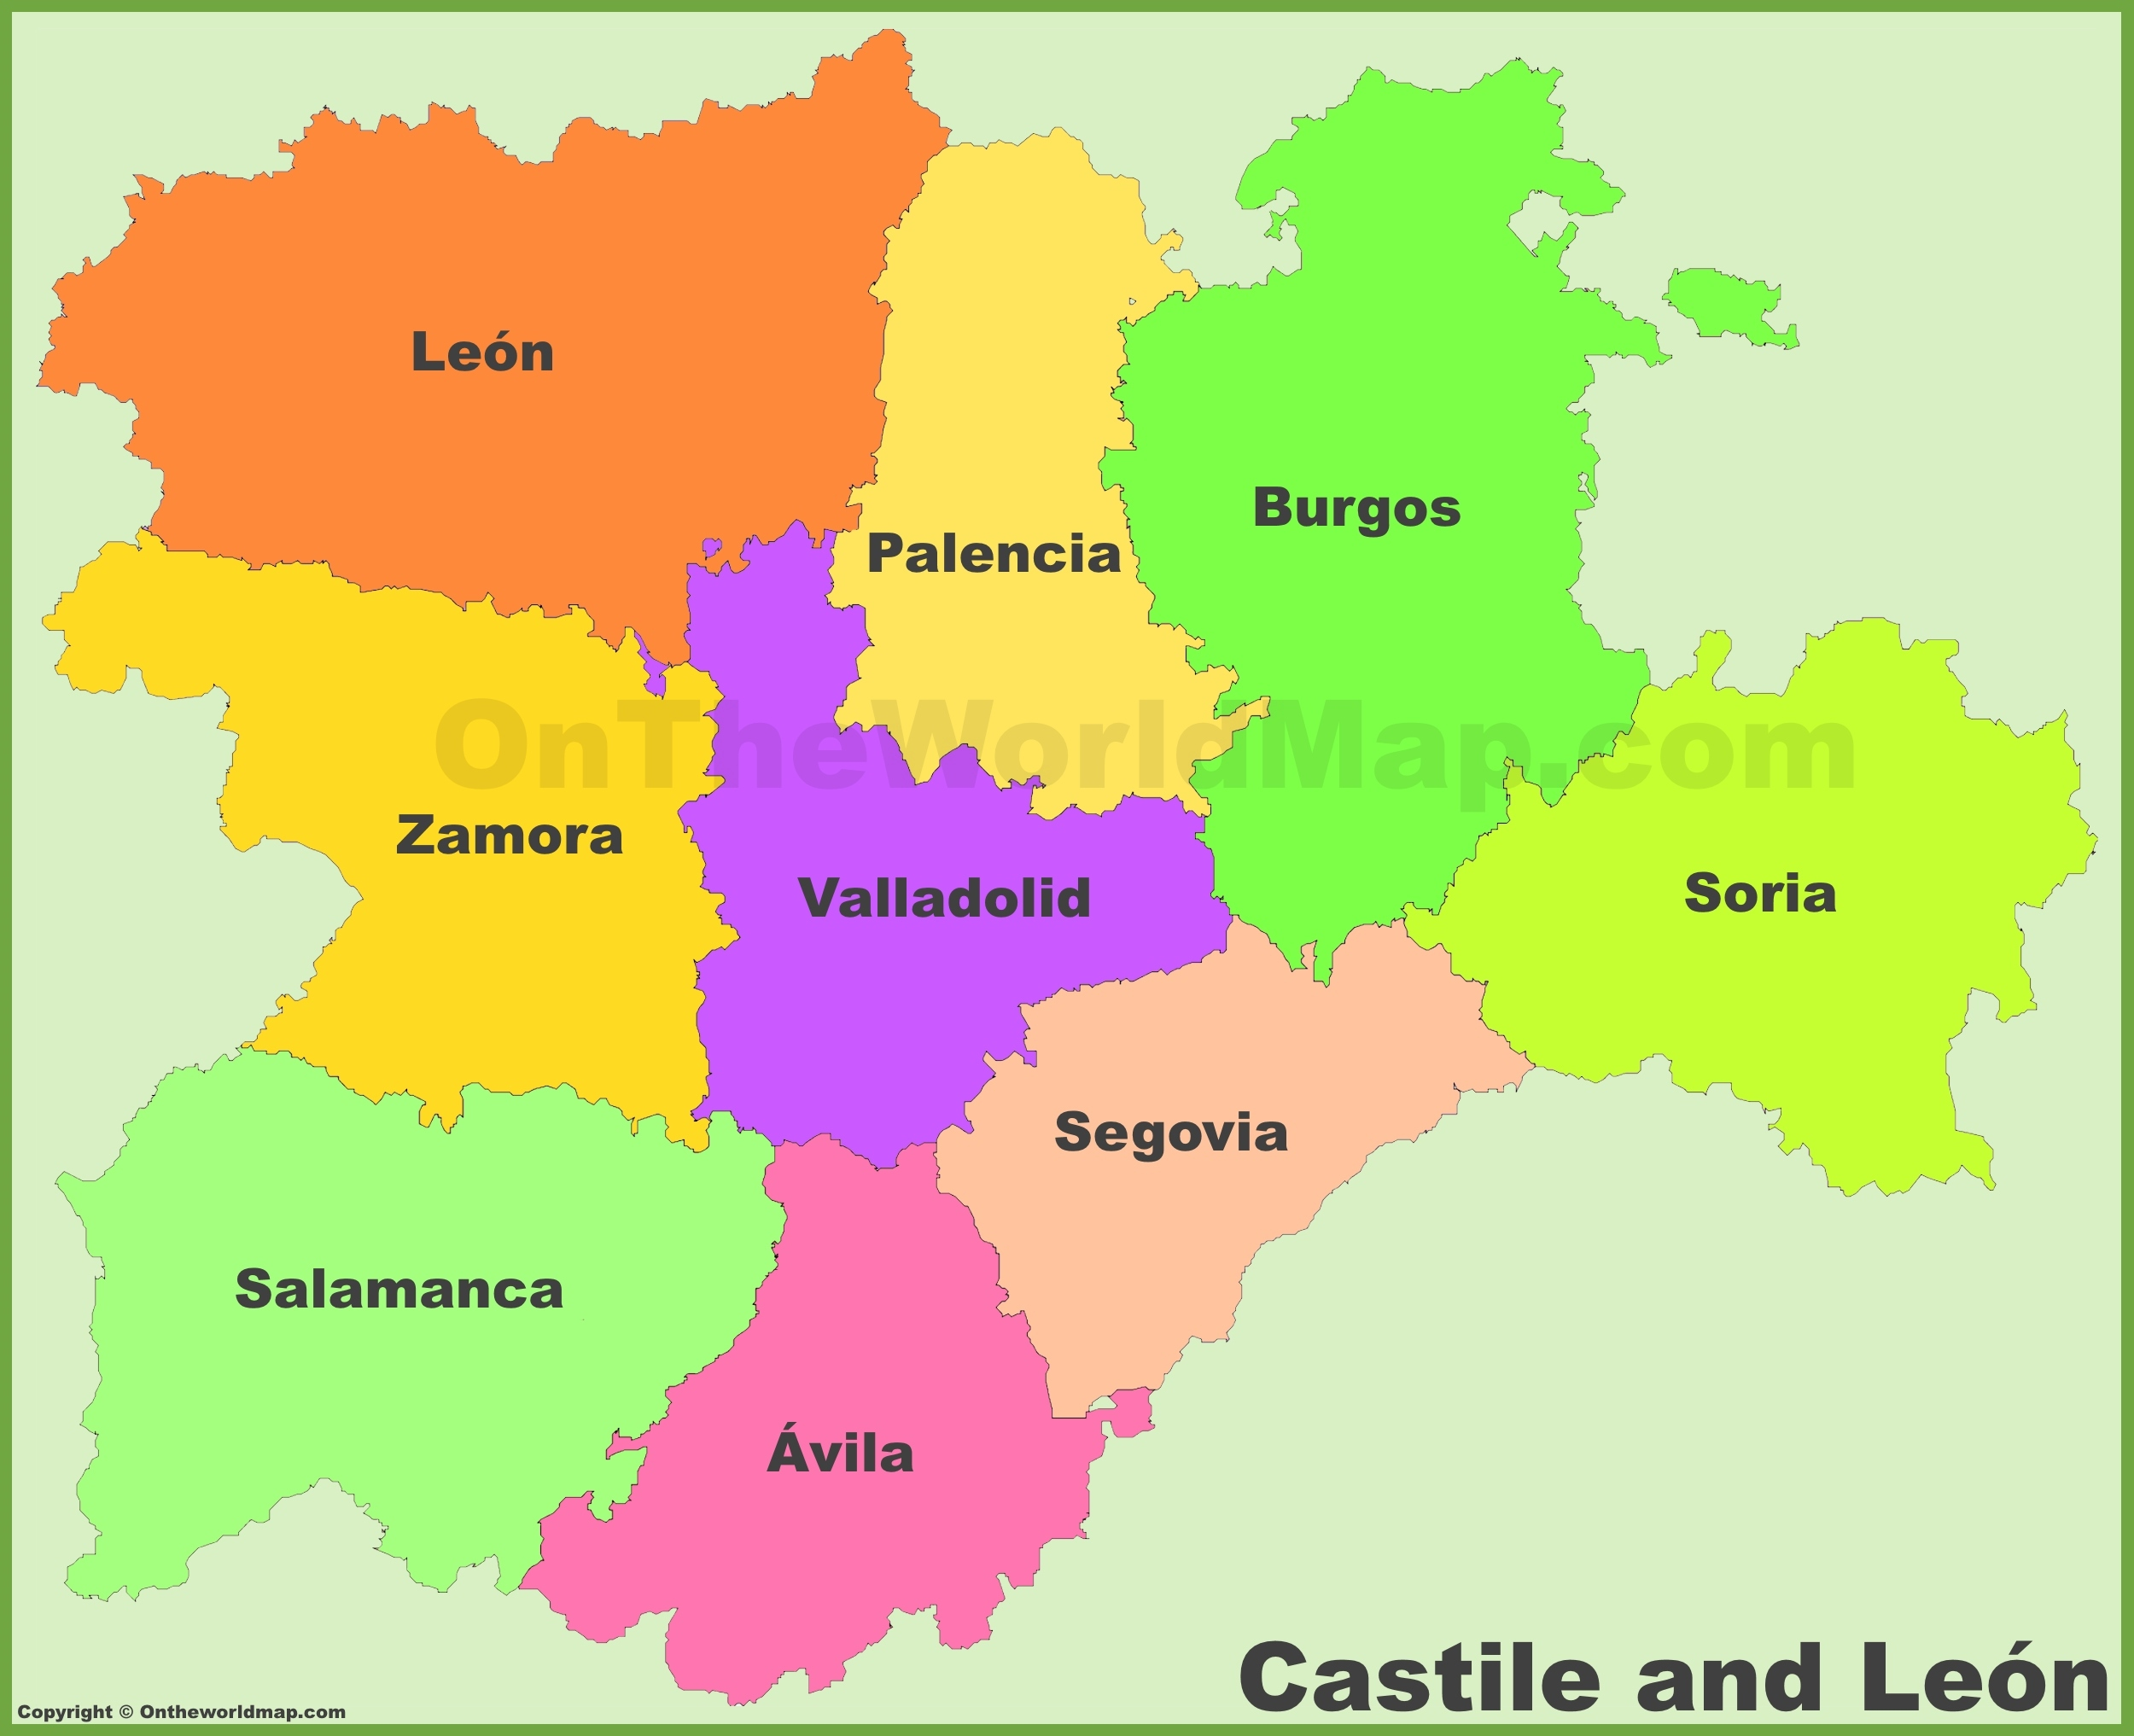 castile-and-leon-provinces-map Castile Map on kingdom of galicia, iberian peninsula map, south valley map, kingdom of navarre map, crown of aragon, valencian community map, extremadura map, clayton map, byzantine empire map, bilbao map, isabella of castile, setenil de las bodegas map, kingdom of sardinia, kingdom of france map, swabia map, aragon map, kingdom of asturias, kingdom of england map, alfonso x of castile, habsburg spain, eden map, kingdom of aragon, aquitaine map, archduchy of austria map, kingdom of navarre, ancient iberia map, granada map, pike map, covington map, ferdinand iii of castile, crown of castile, kingdom of portugal,